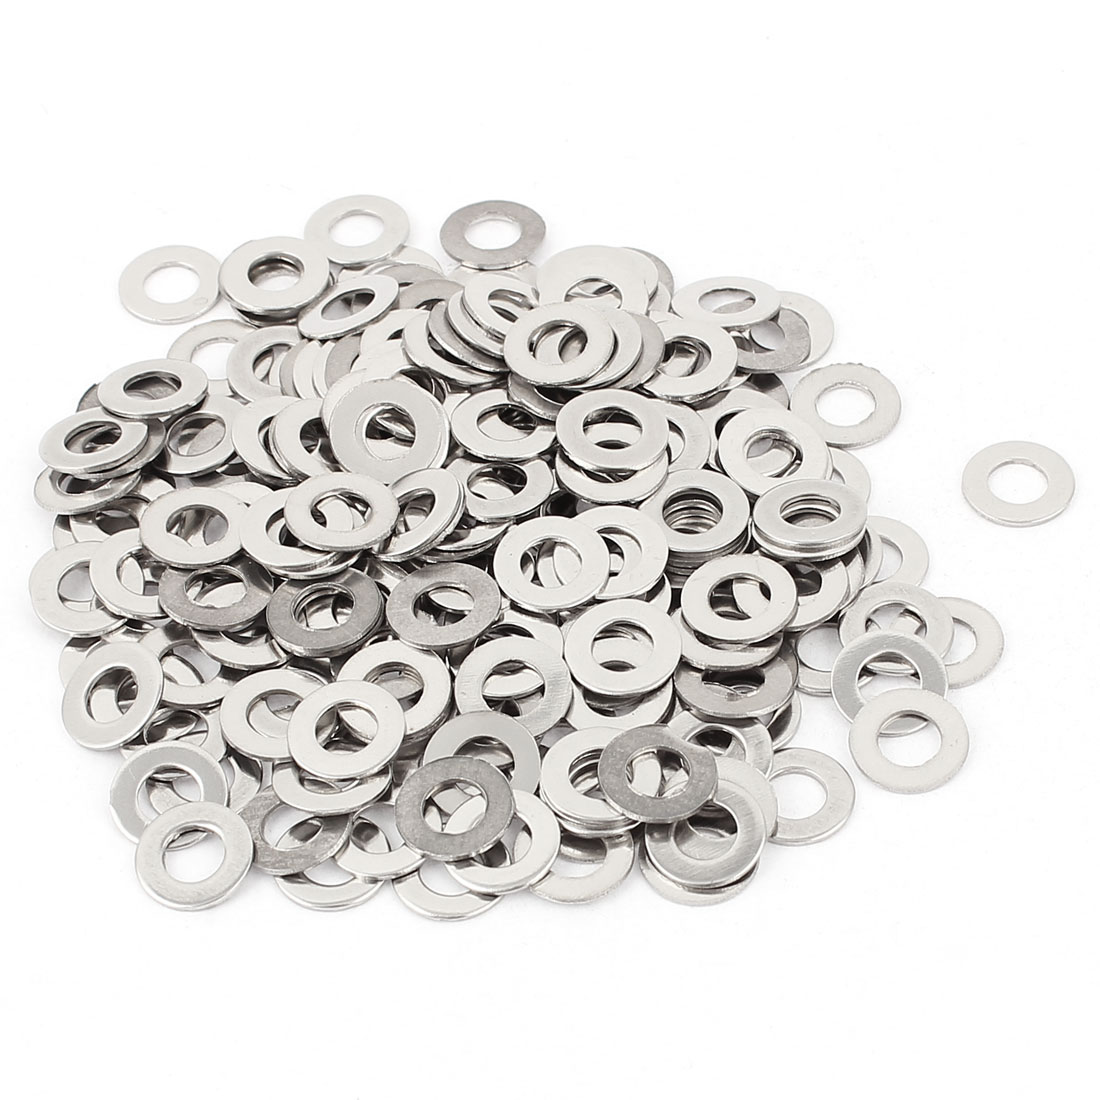 Bolt Nuts Stainless Steel M5 Flat Washer Spacer Silver Tone 200pcs